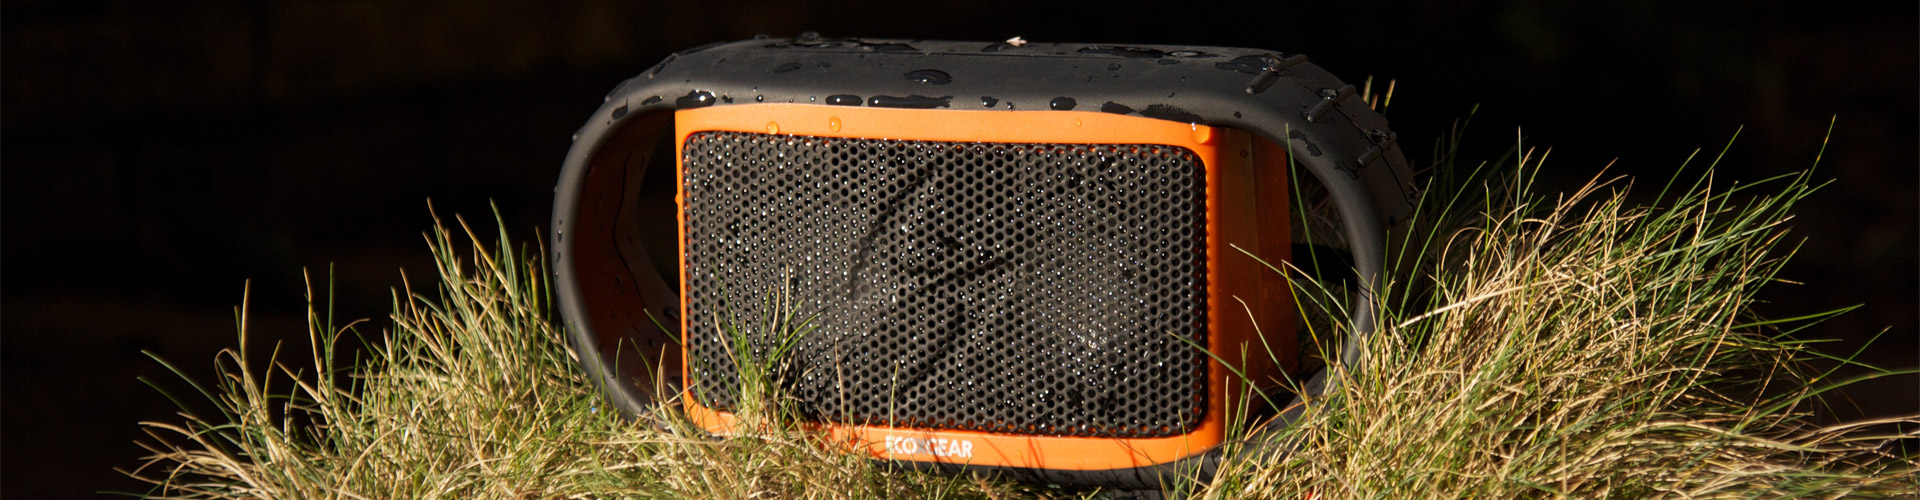 ECOXGEAR ECXOBT Speaker Review: Rugged Build, Big Sound